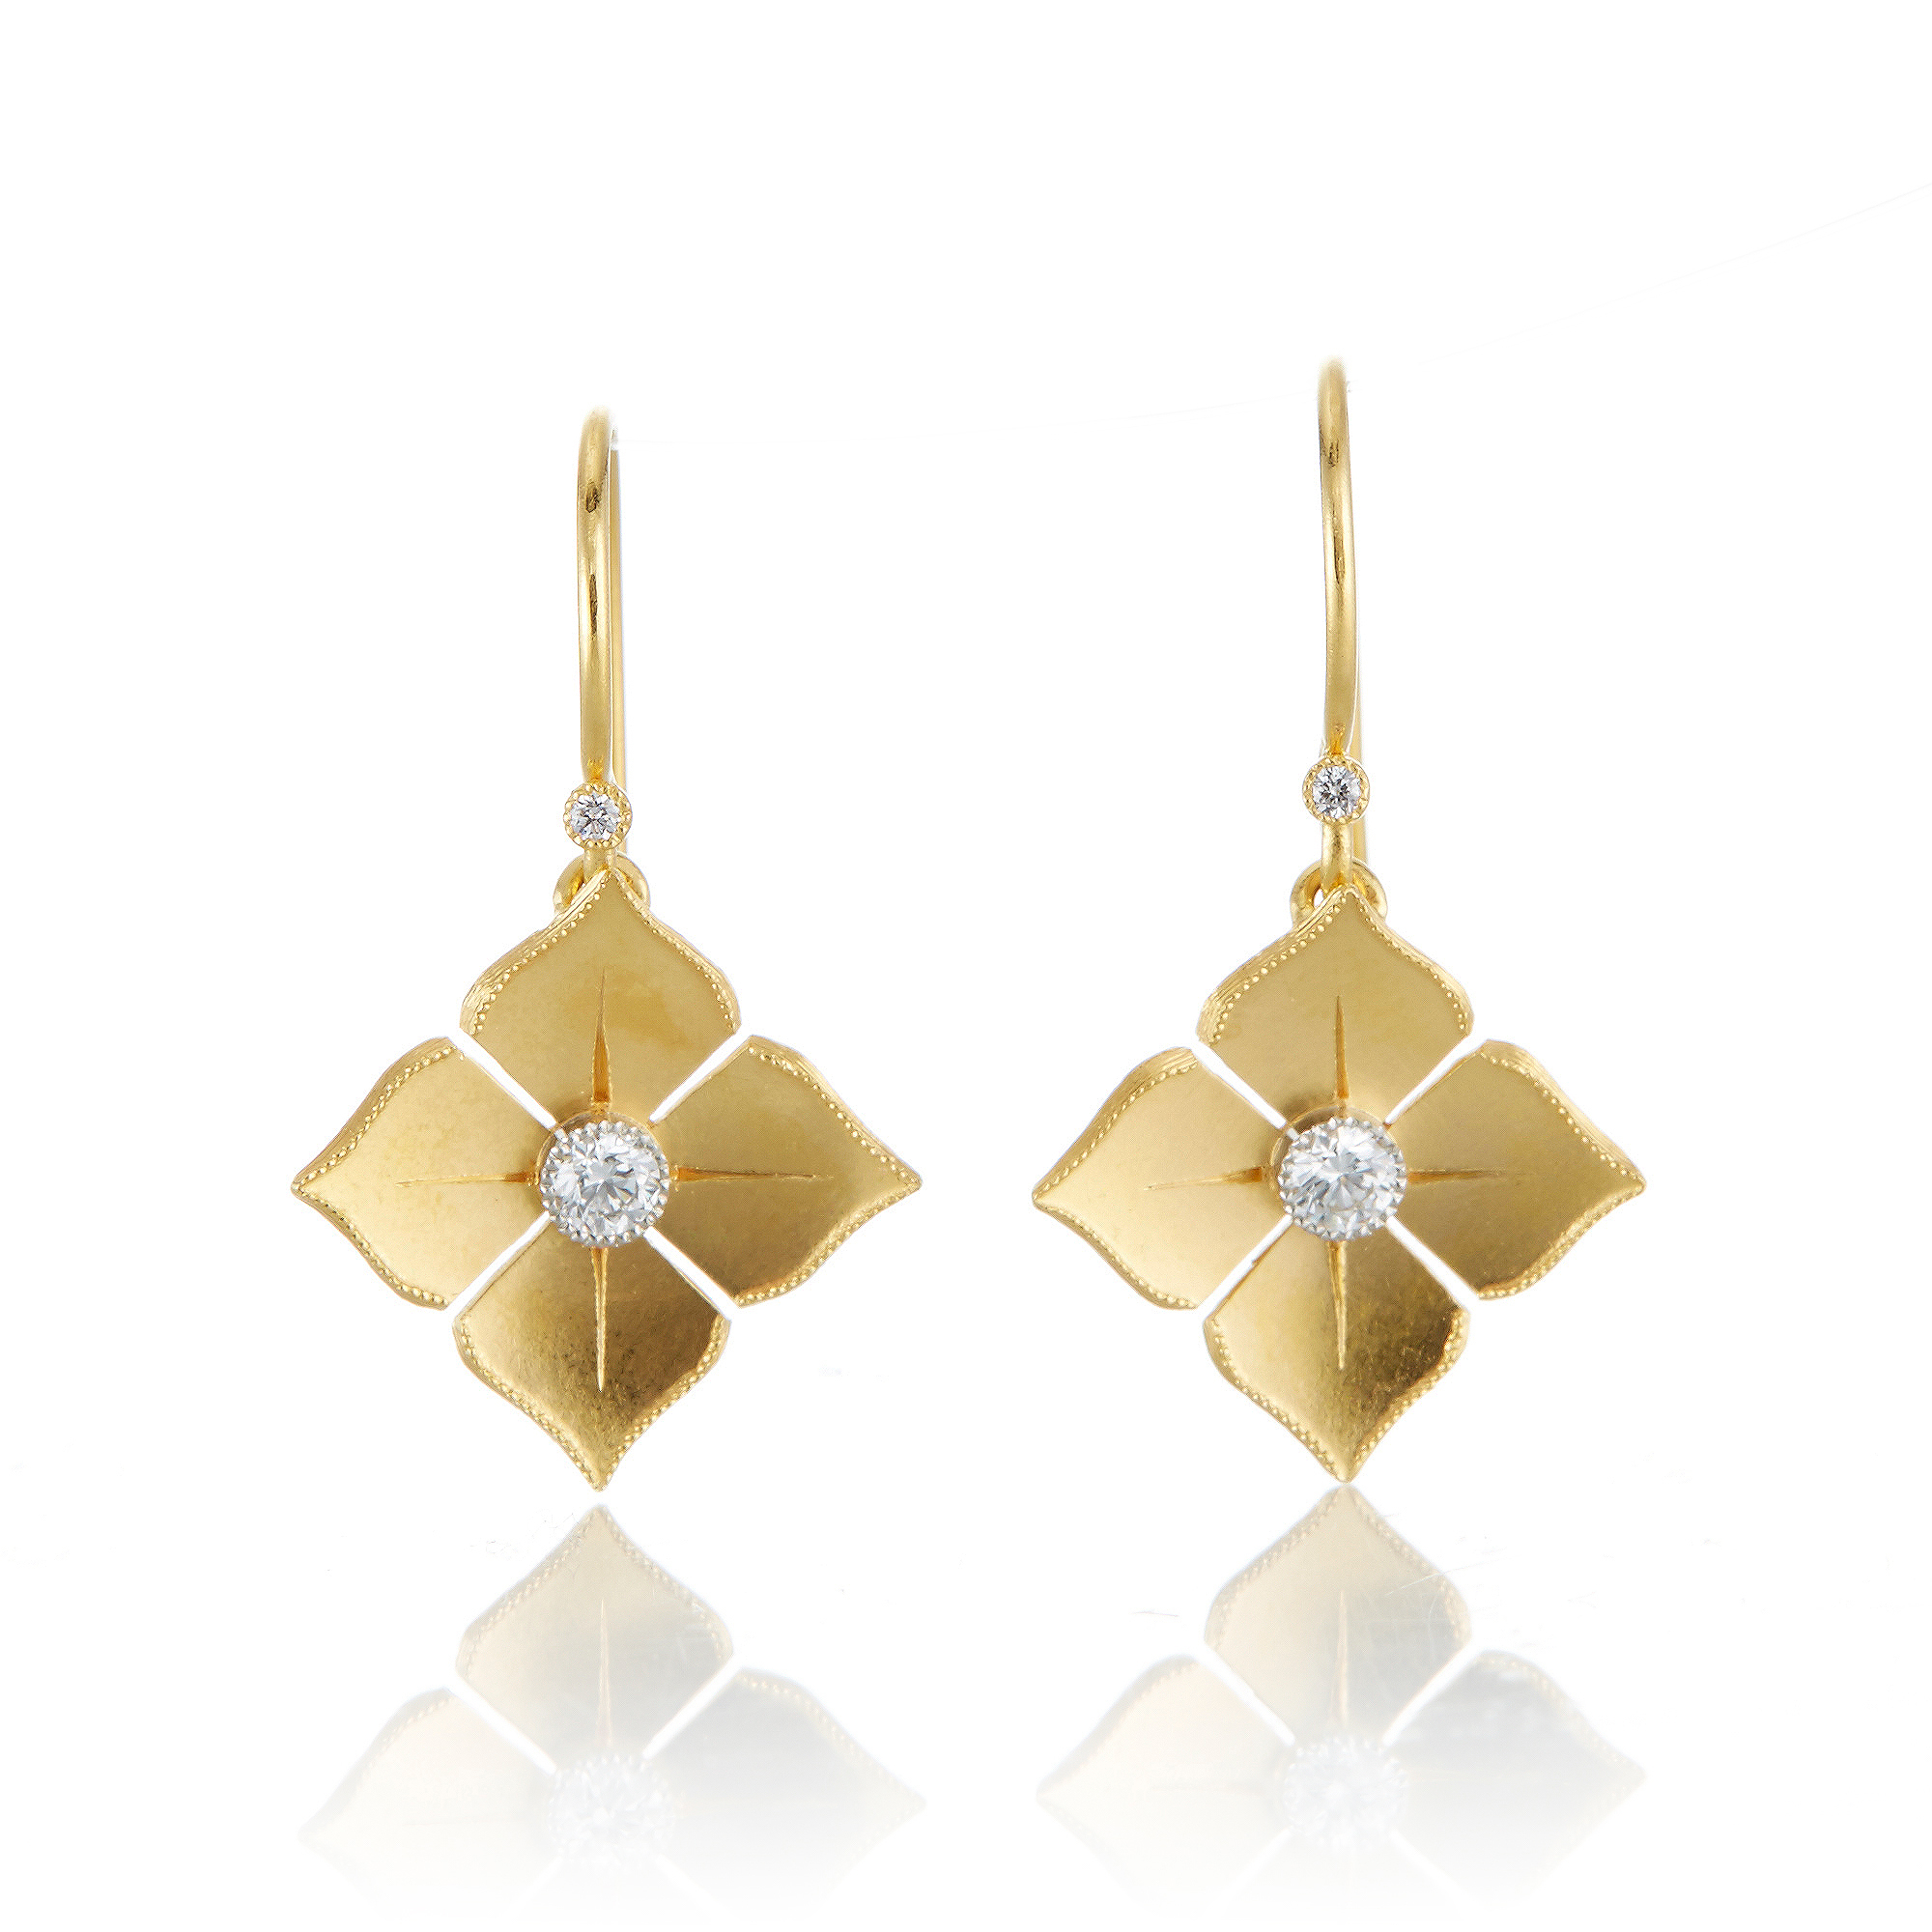 McTeigue & McClelland Platinum & Gold Quadrille Drop Earrings